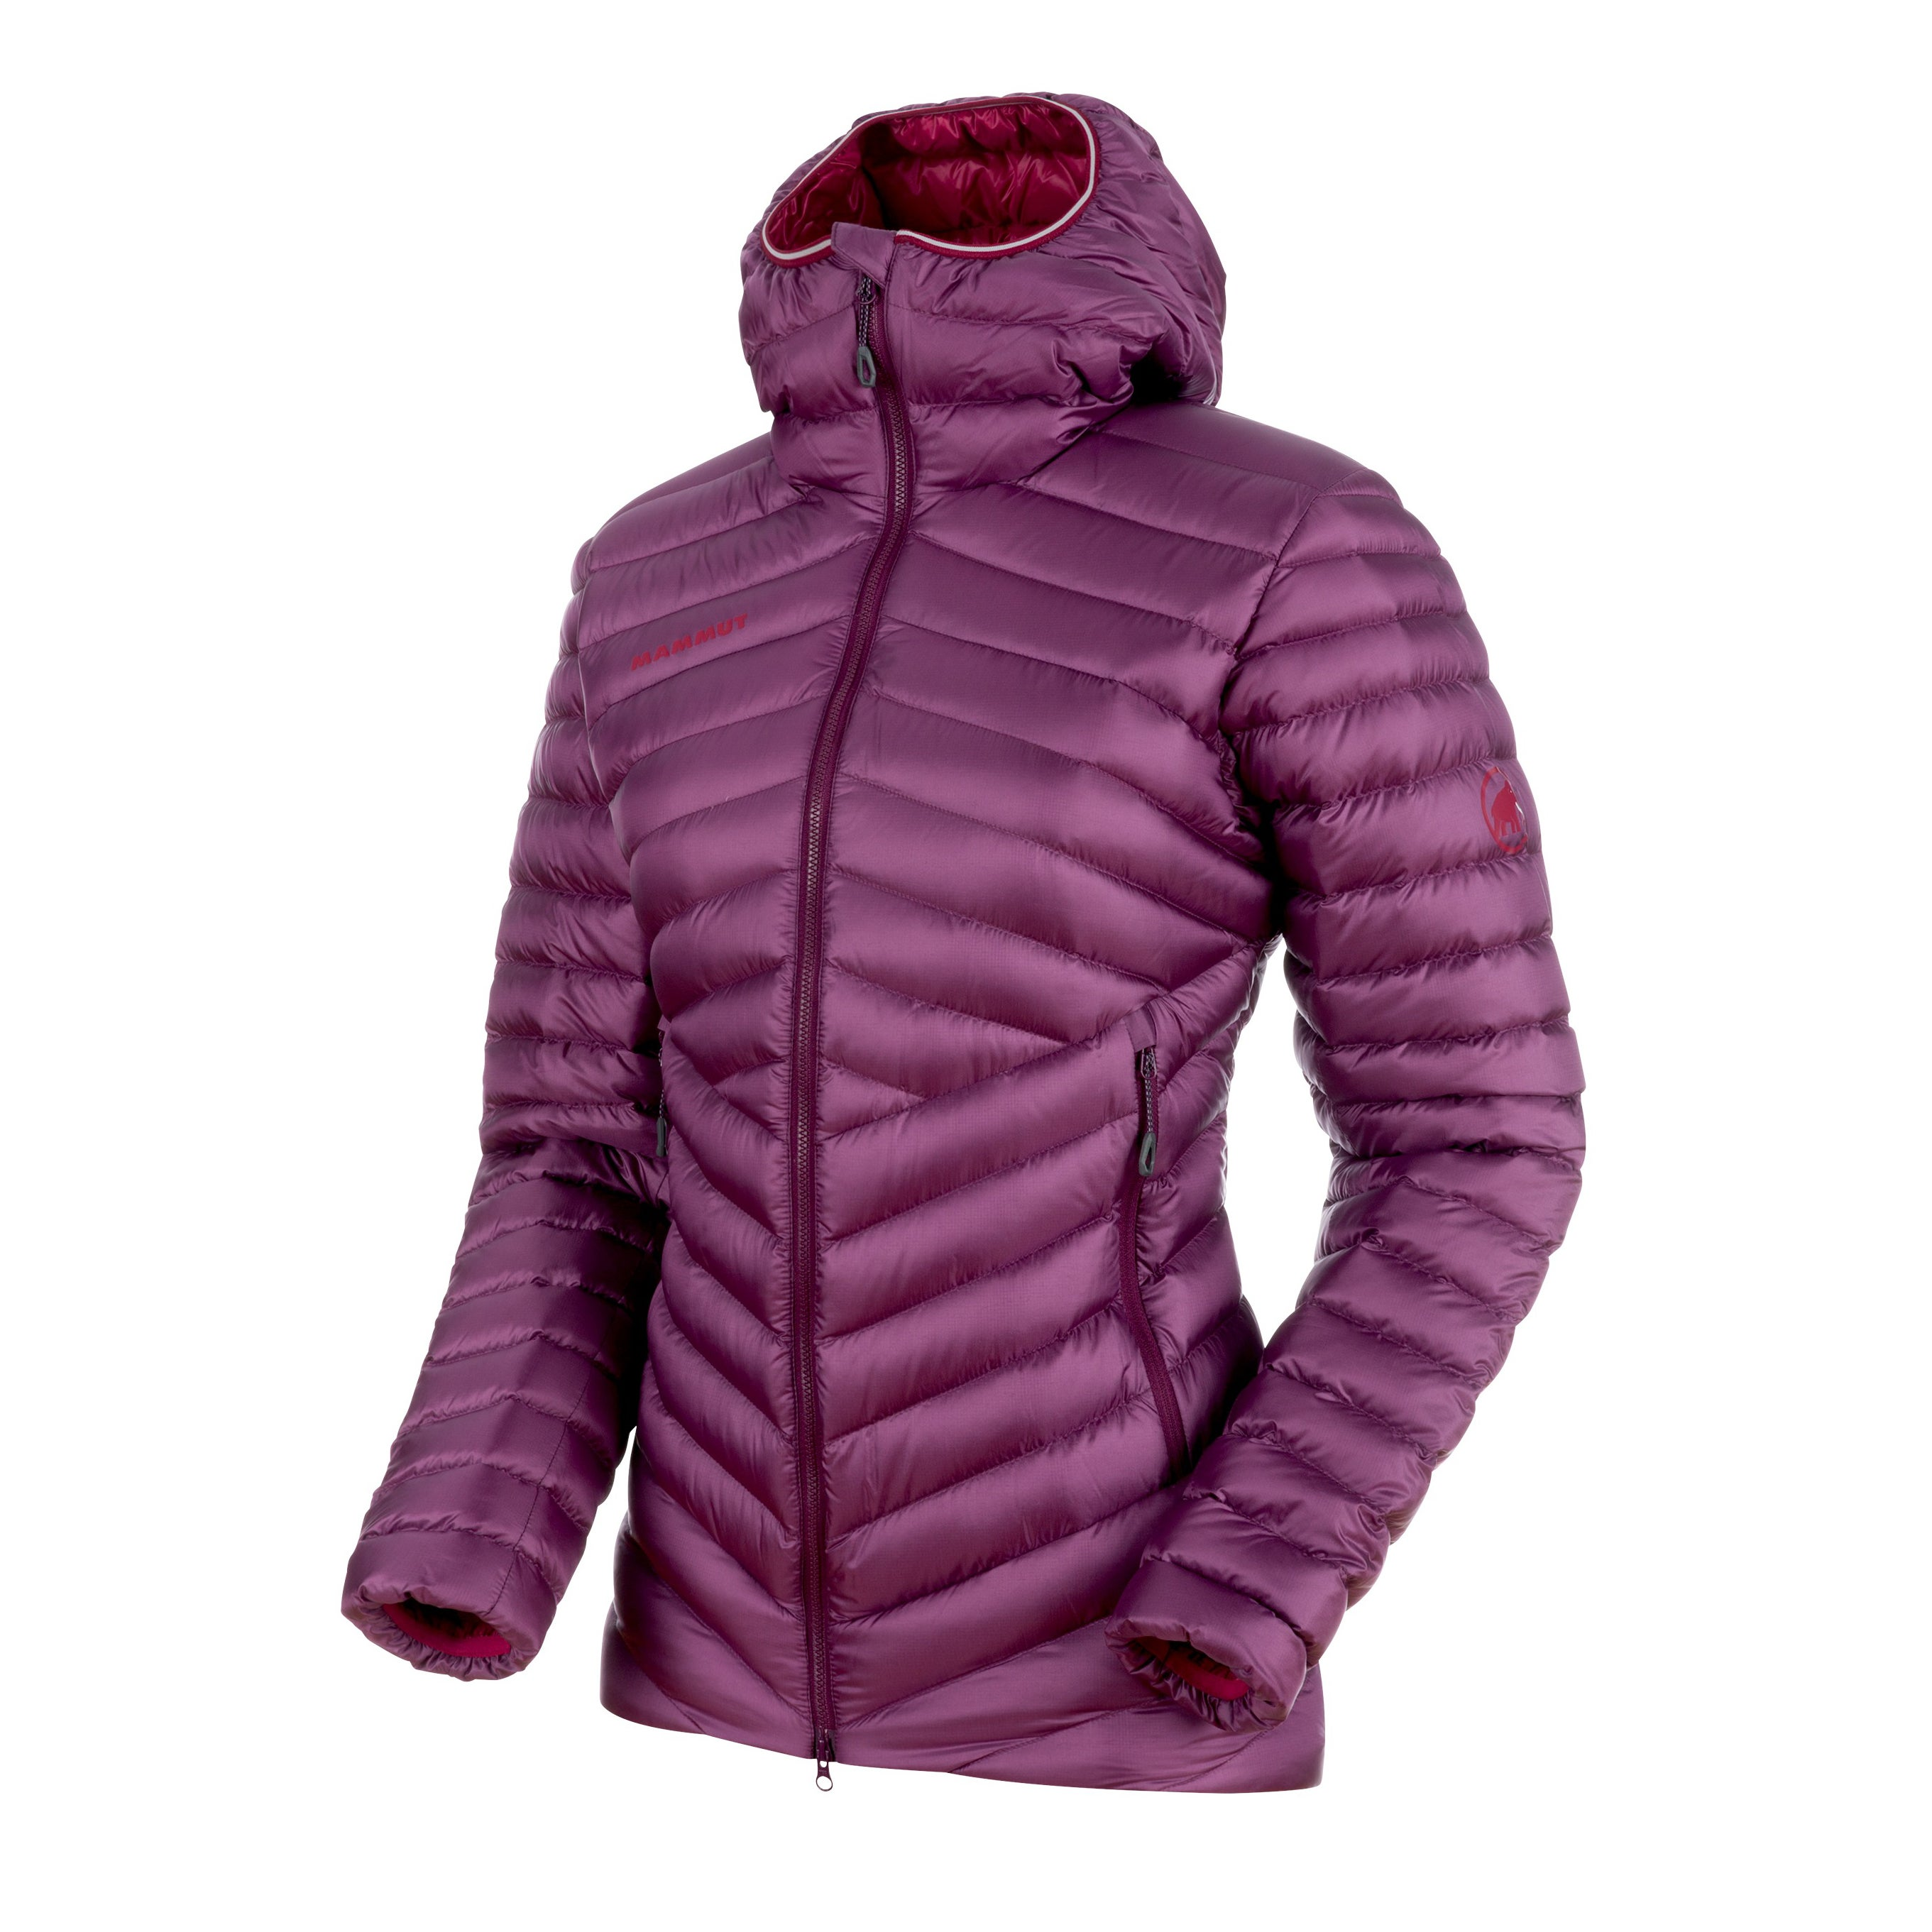 on sale f6164 4c701 Giacca Montagna Mammut Broad Peak In Hooded